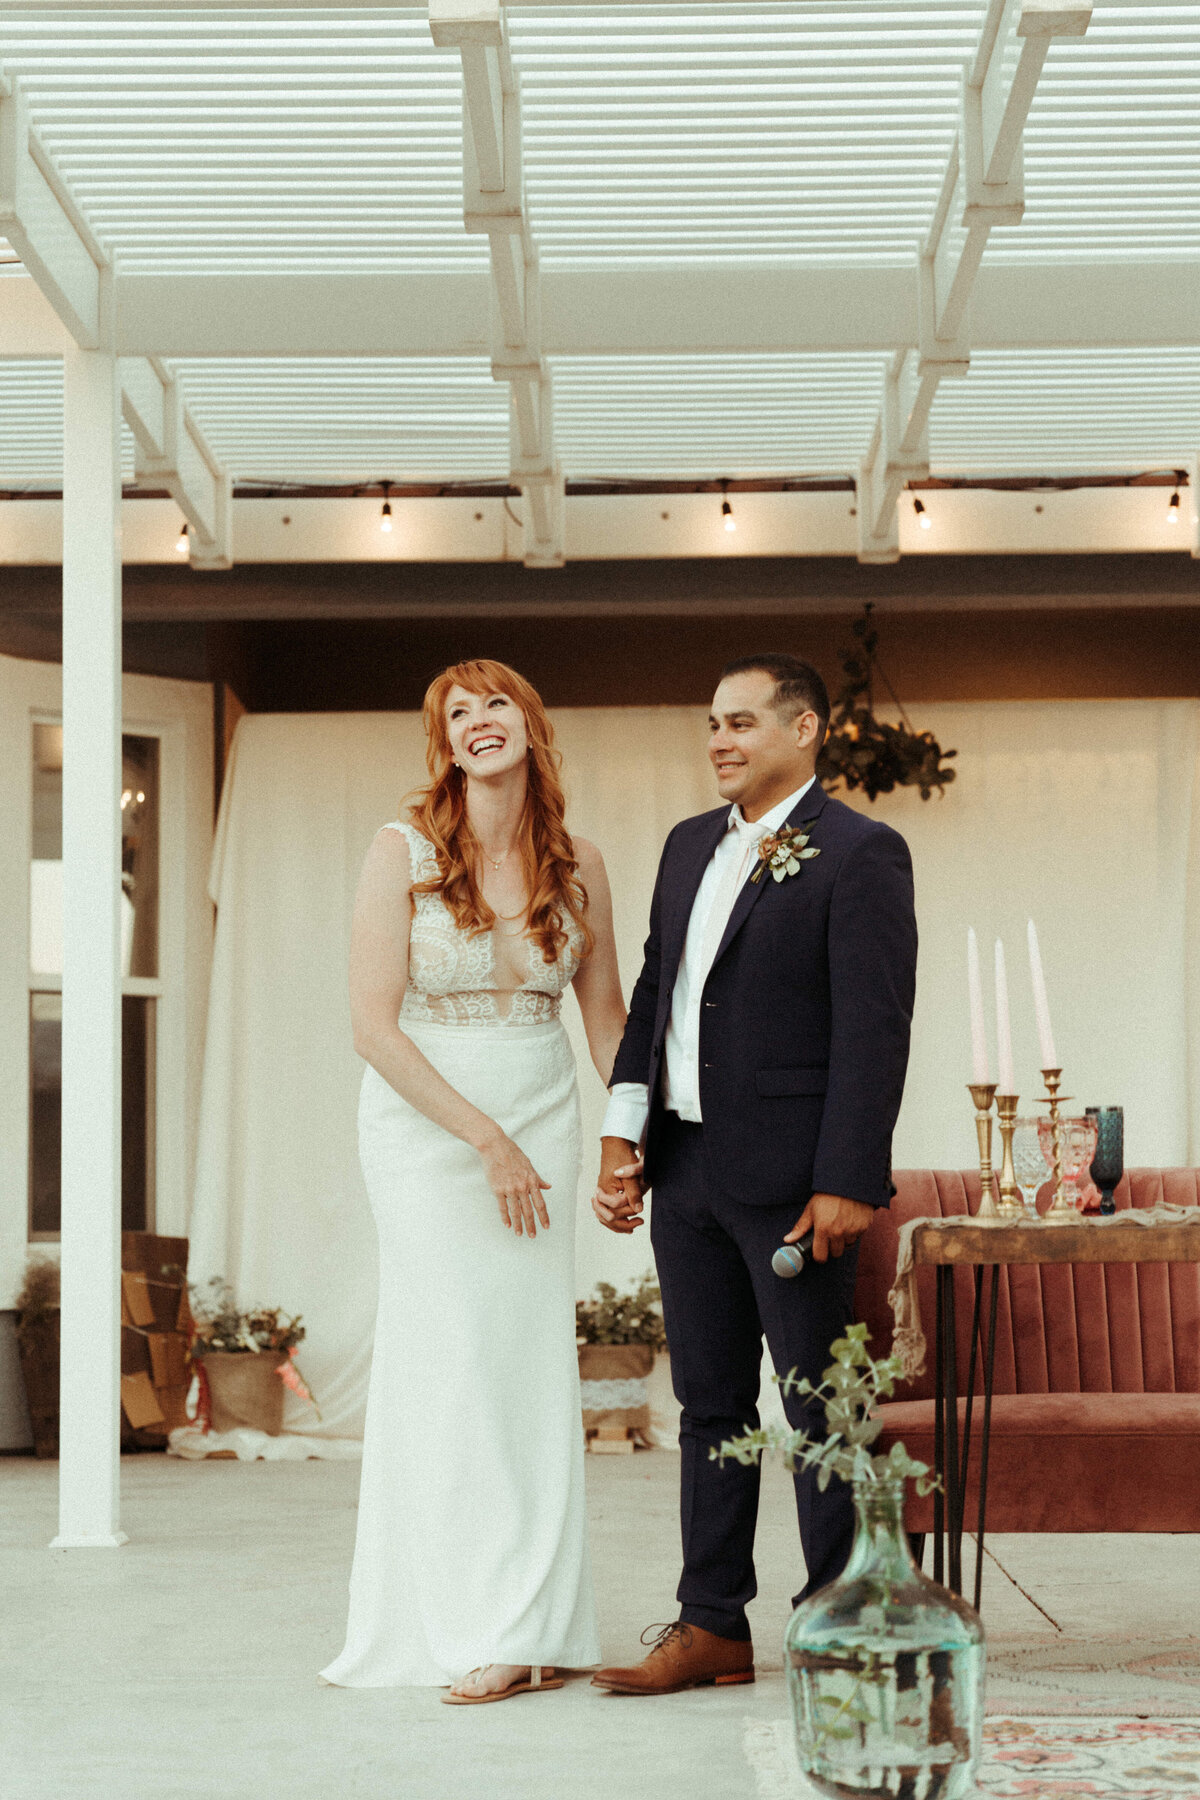 California-elopement-photographer-Autumn-Marie-13